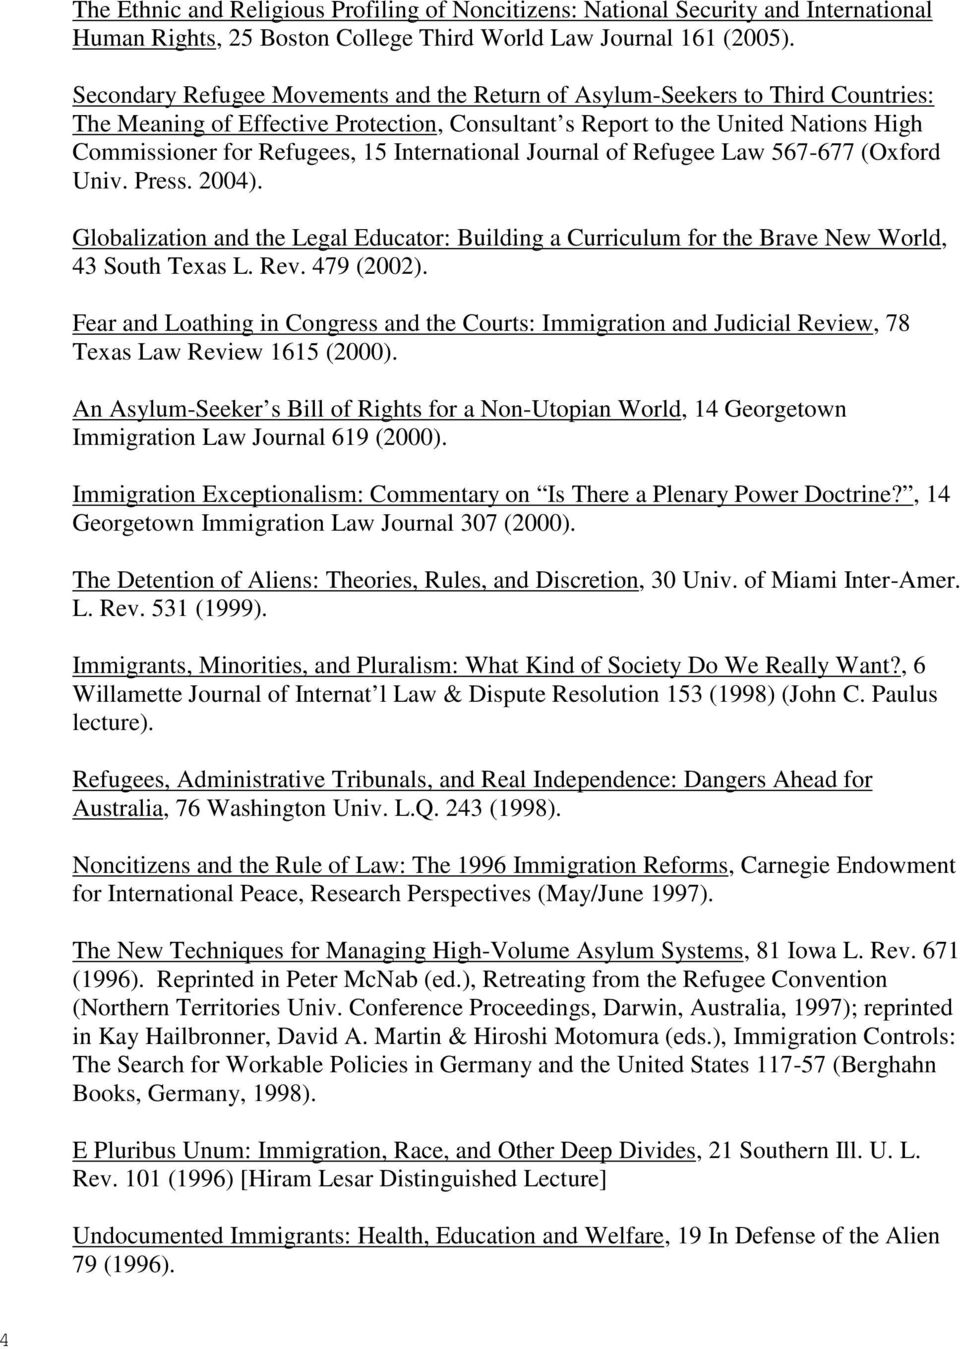 International Journal of Refugee Law 567-677 (Oxford Univ. Press. 2004). Globalization and the Legal Educator: Building a Curriculum for the Brave New World, 43 South Texas L. Rev. 479 (2002).